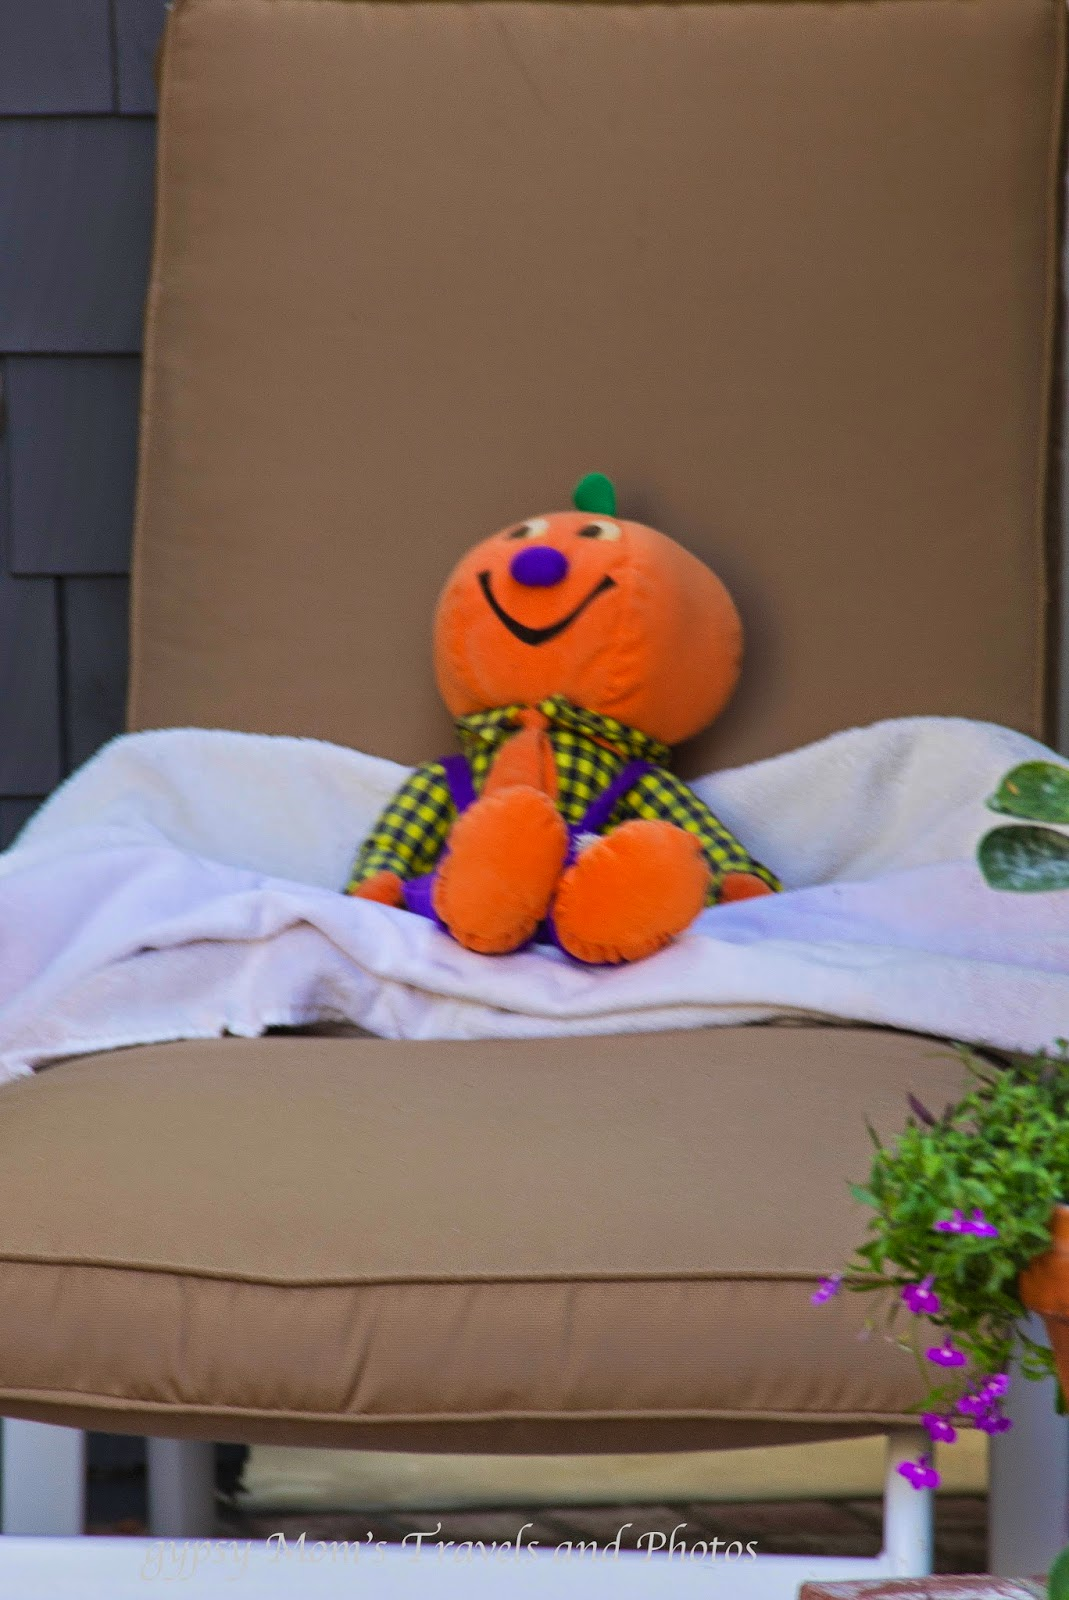 Mr. Pumpkin resting on chaise lounge in front of house on Balboa Island